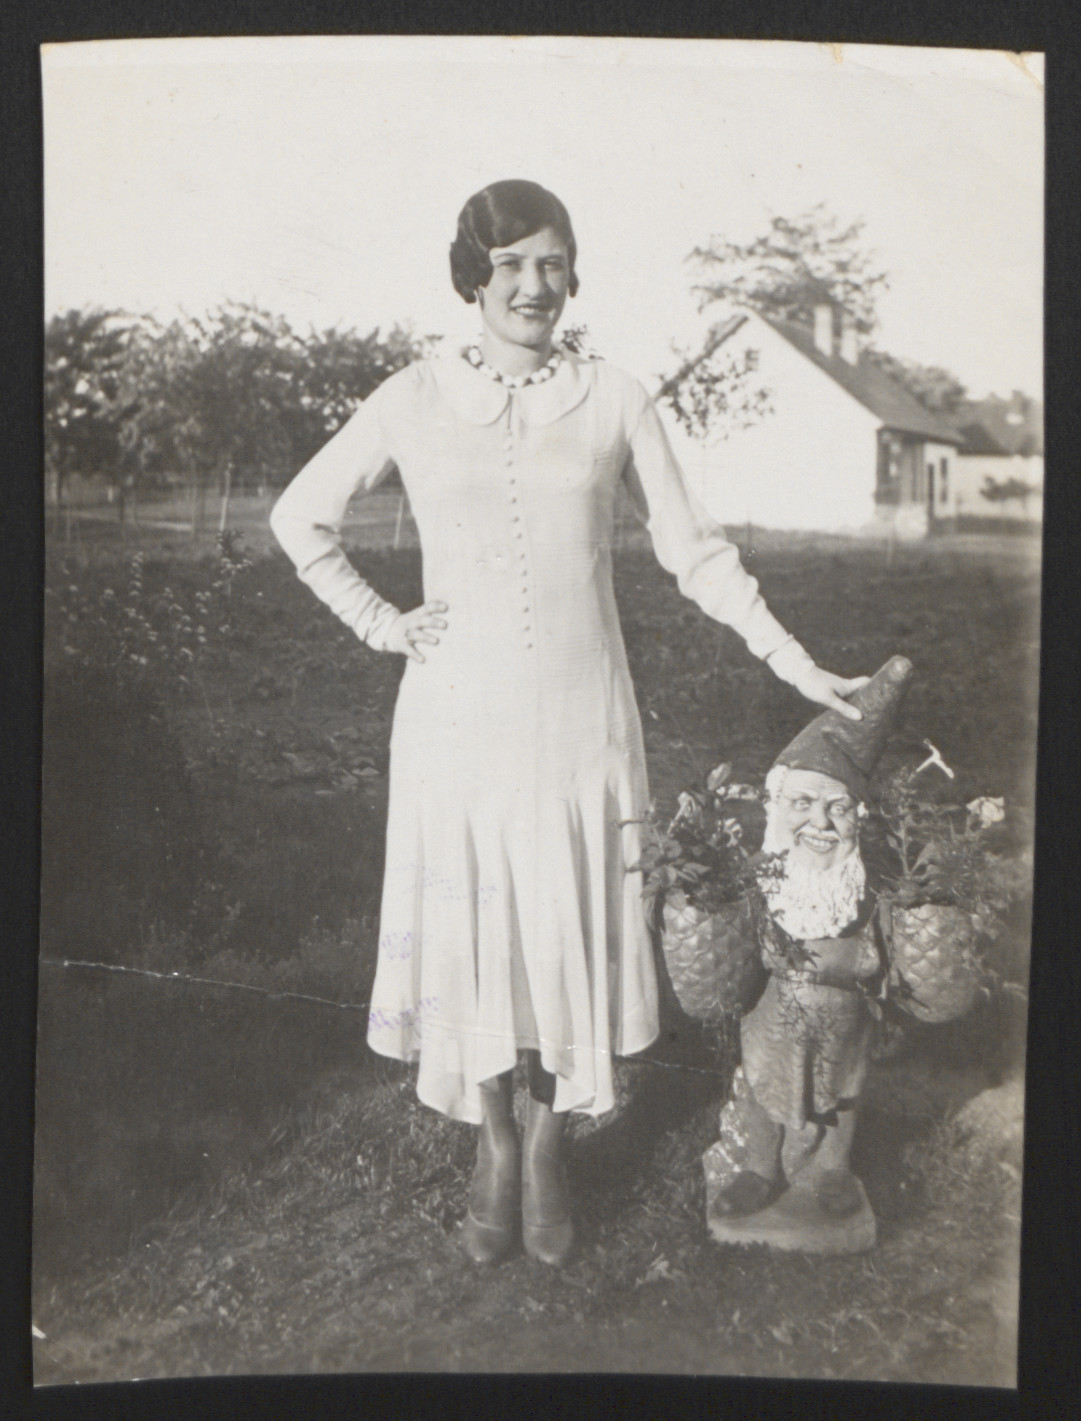 Lilly Roth poses next to a garden gnome.